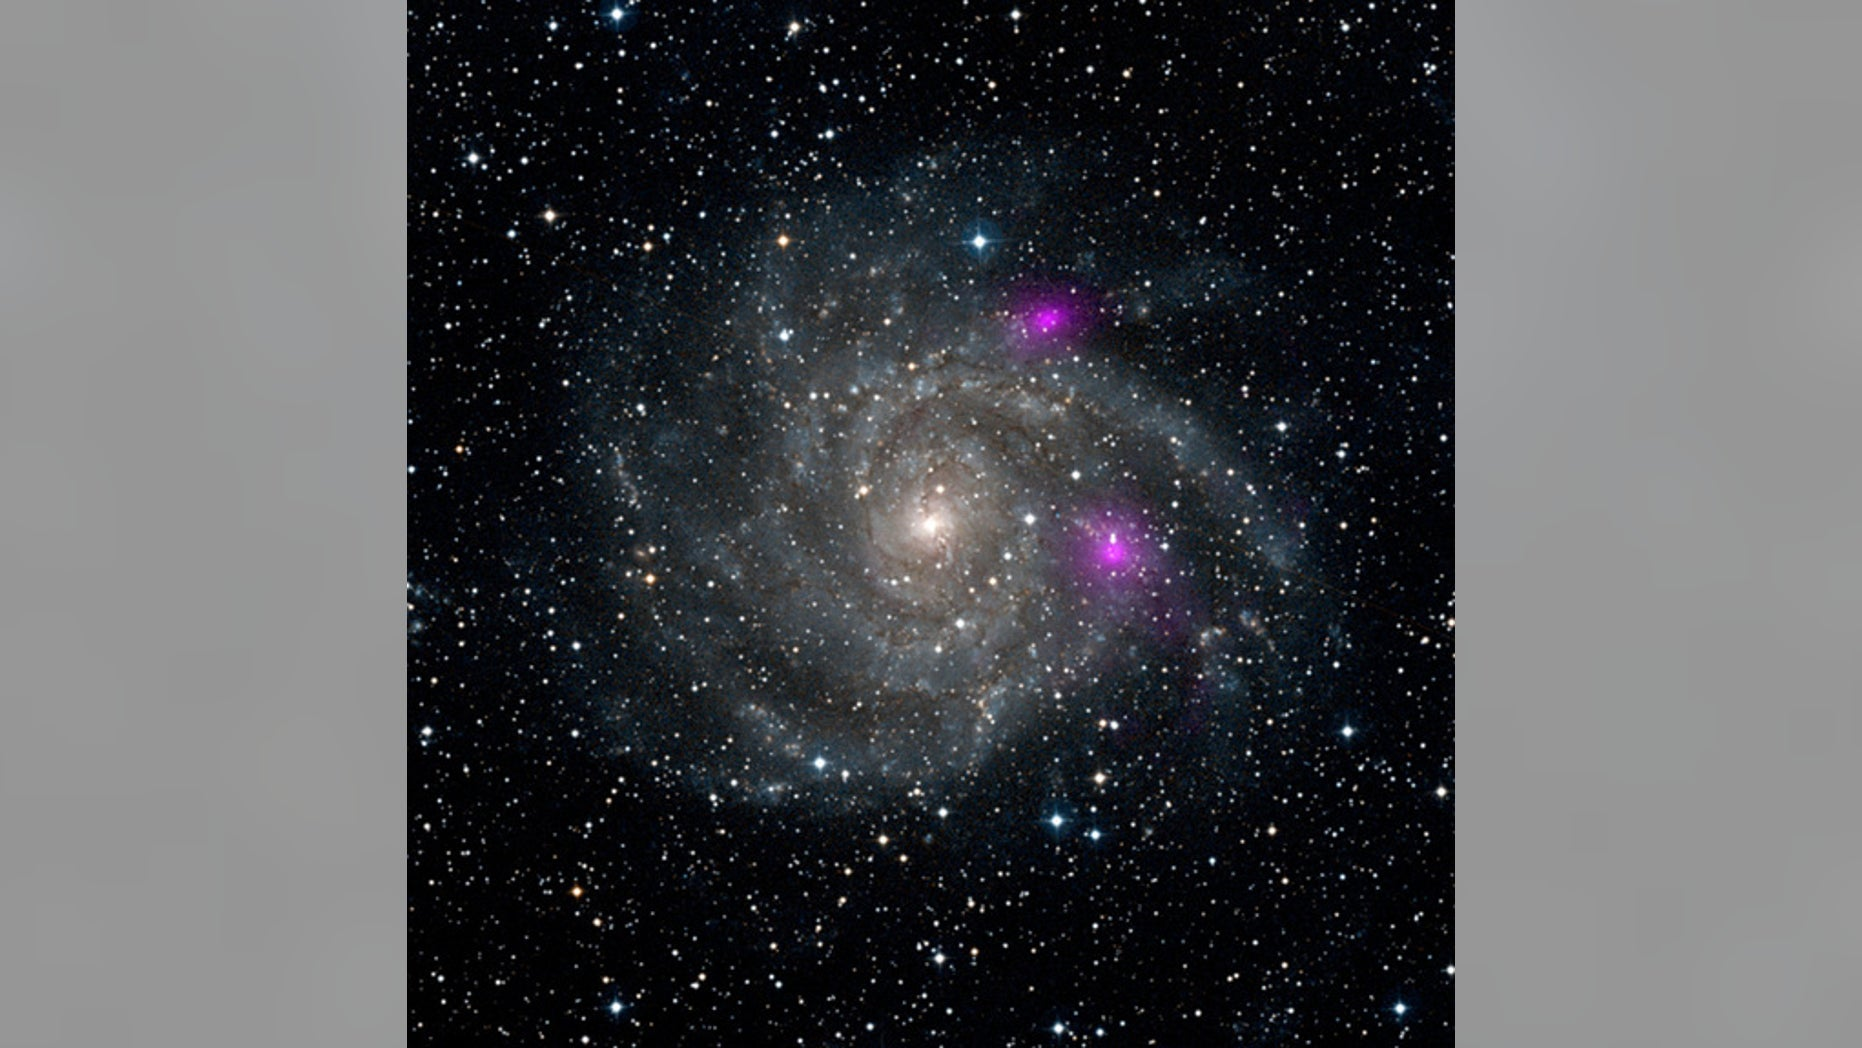 This new view of spiral galaxy IC 342, also known as Caldwell 5, includes data from NASA's Nuclear Spectroscopic Telescope Array, or NuSTAR. High-energy X-ray data from NuSTAR have been translated to the color magenta, and superimposed on a vis